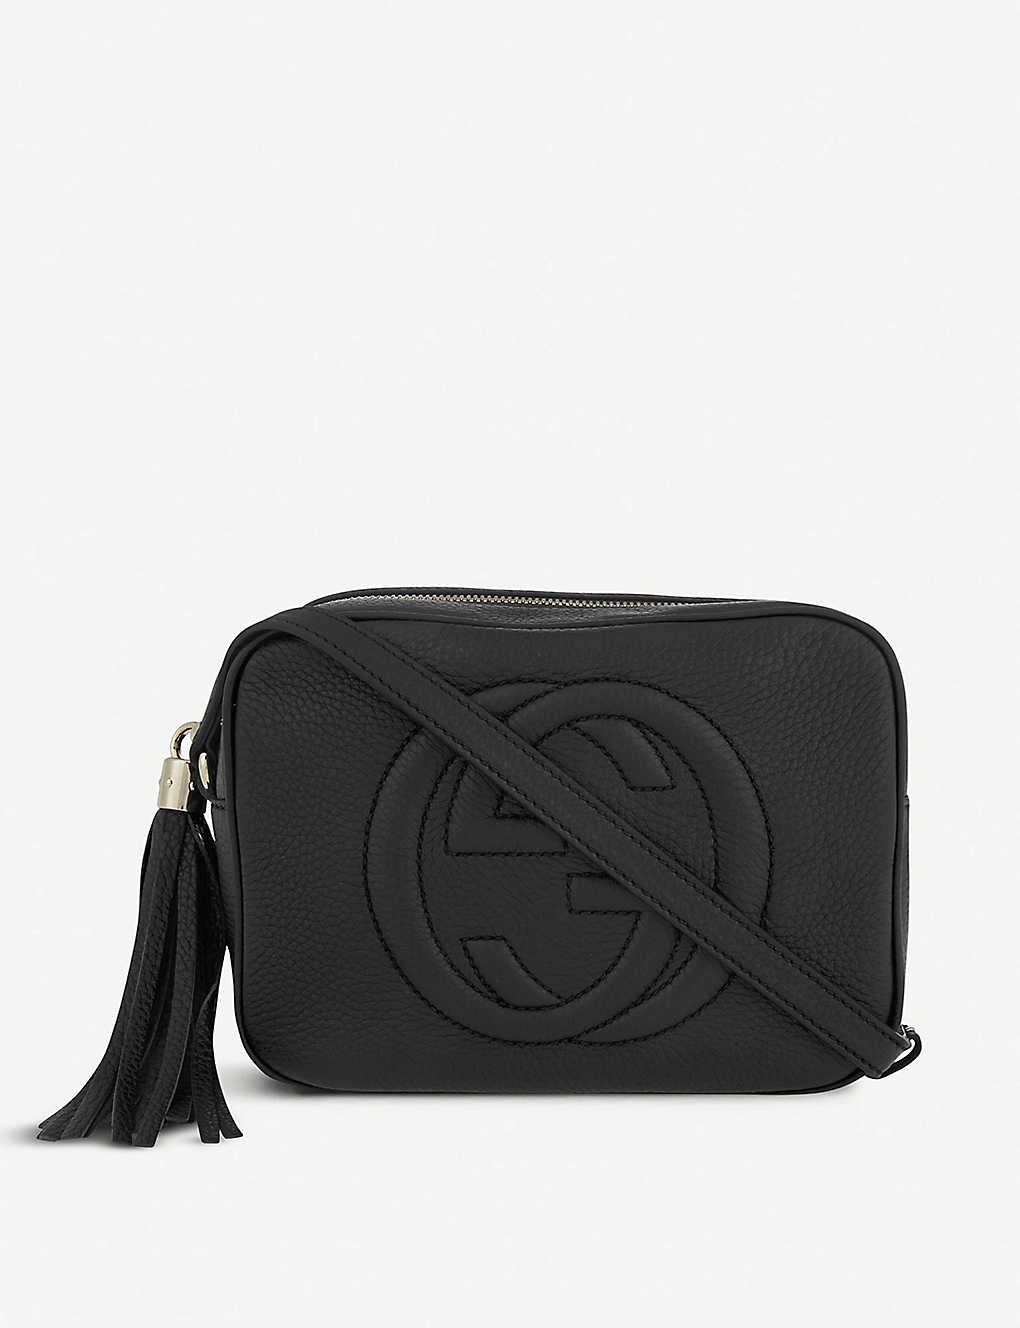 4ff408d3965 GUCCI - Soho leather cross-body bag